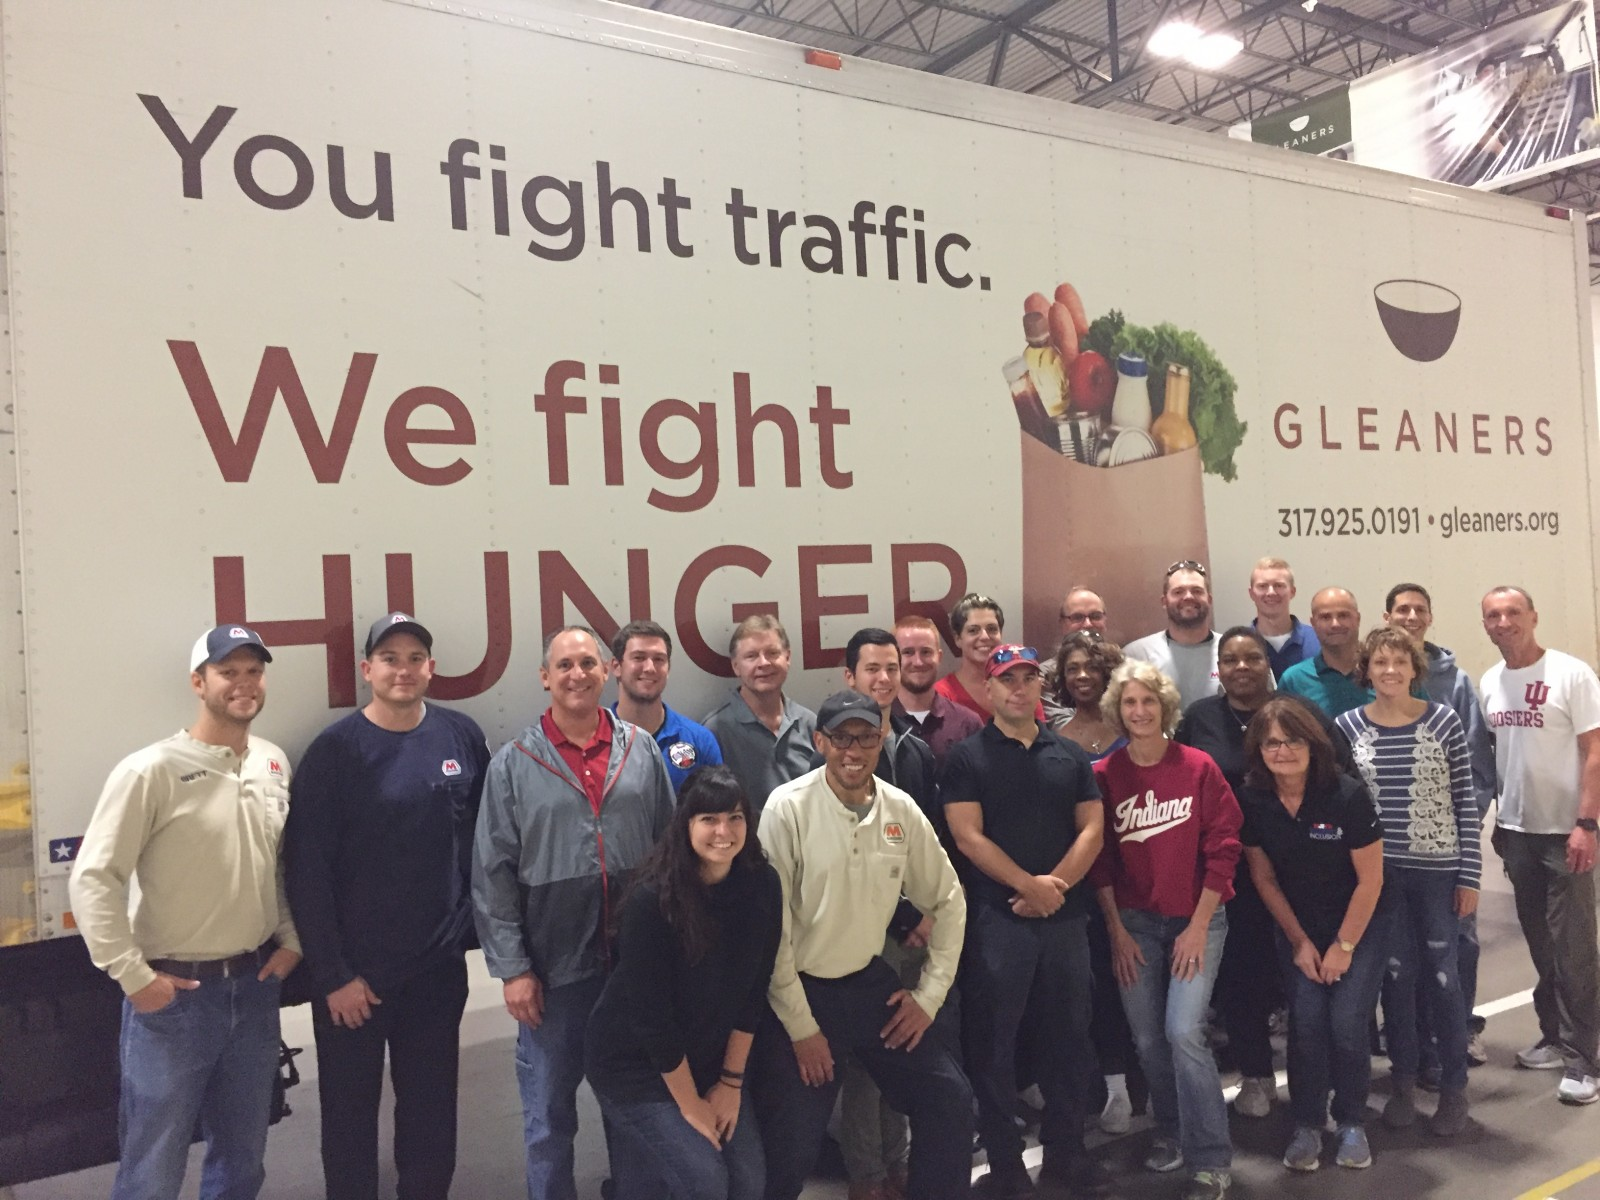 Gleaners-volunteers-IMG_5784